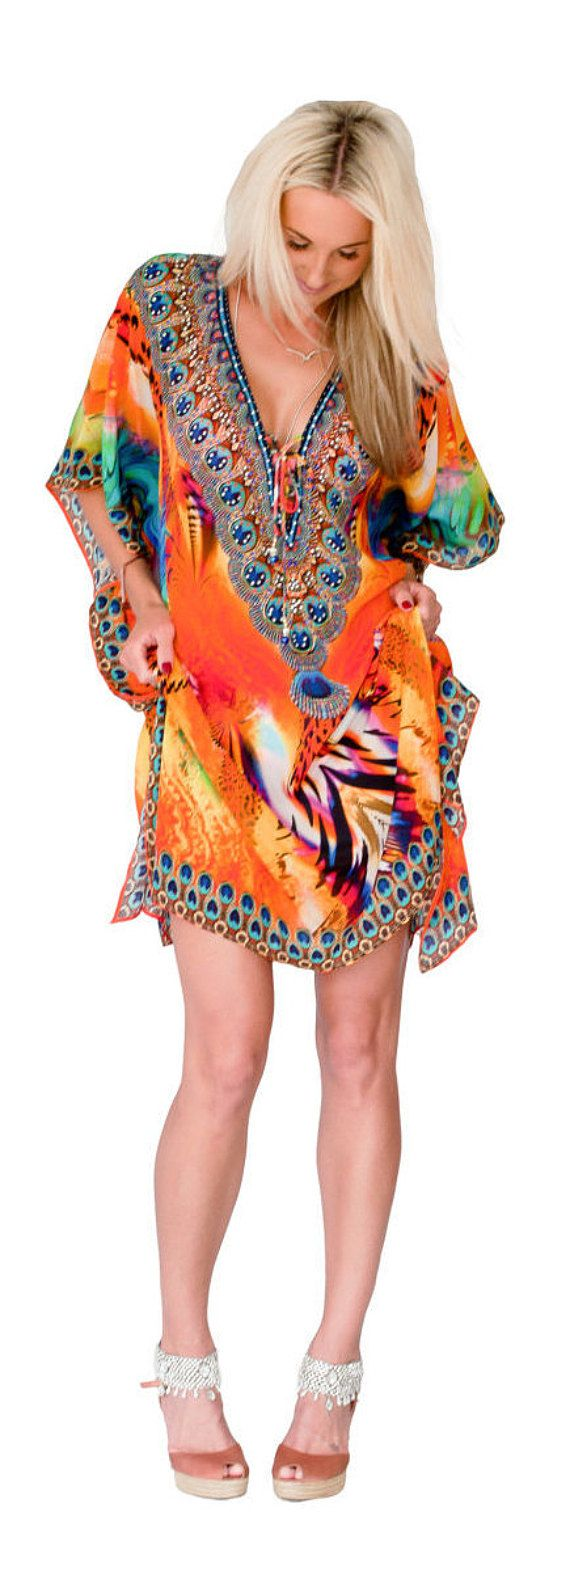 Kaftan dress, embellished Viscose Georgette multi coloured print relaxed fit gorgeous lace-up kaftan for beach or smart casual wear